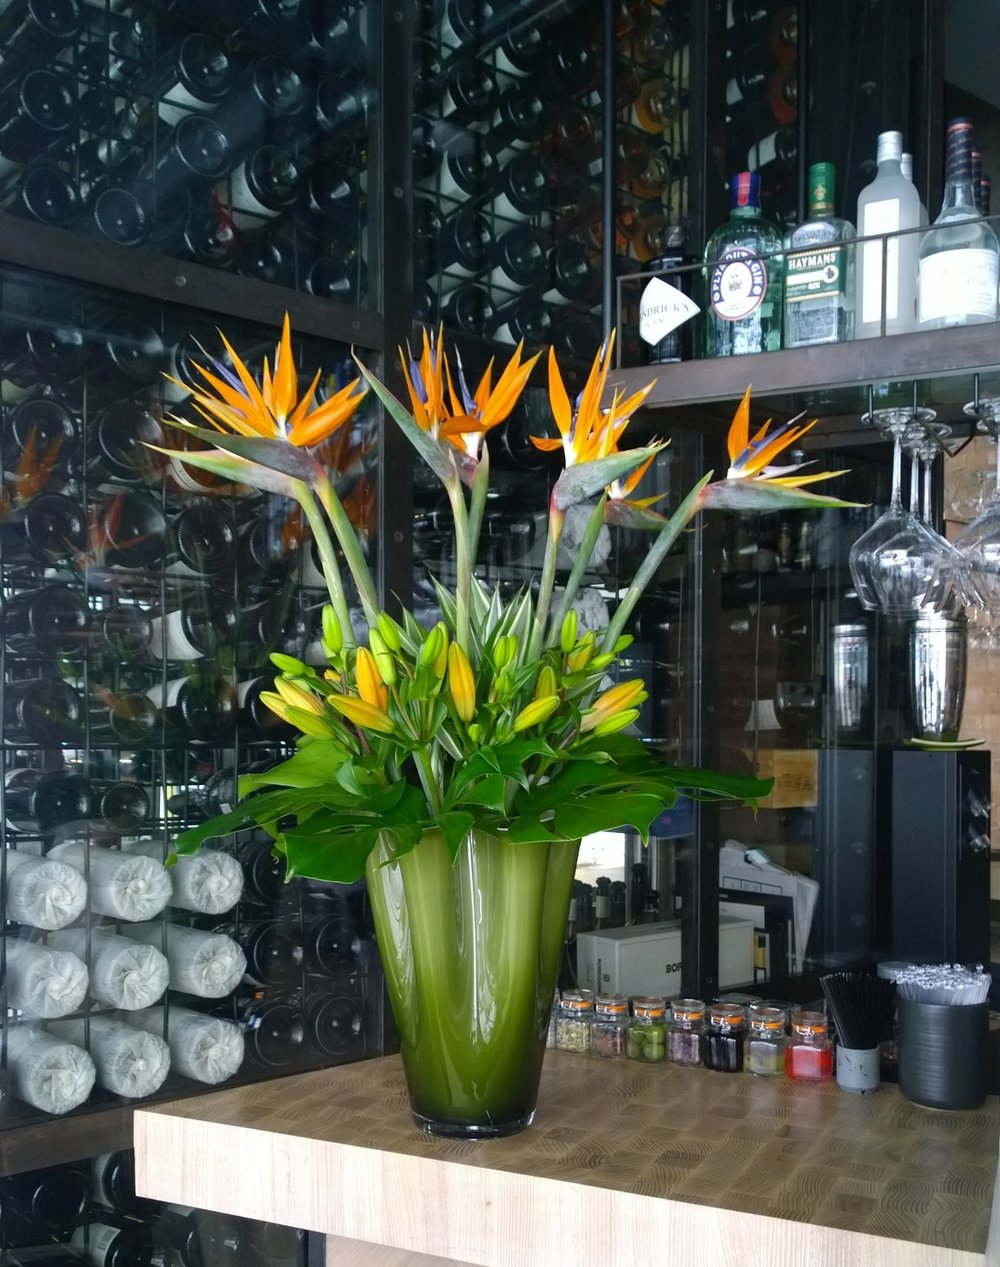 HOTEL, CORPORATE & OFFICE FLOWERS - Creating weekly flower contracts for Offices, Hotels, Restaurants and Bars in London, Essex and Hertfordshire.